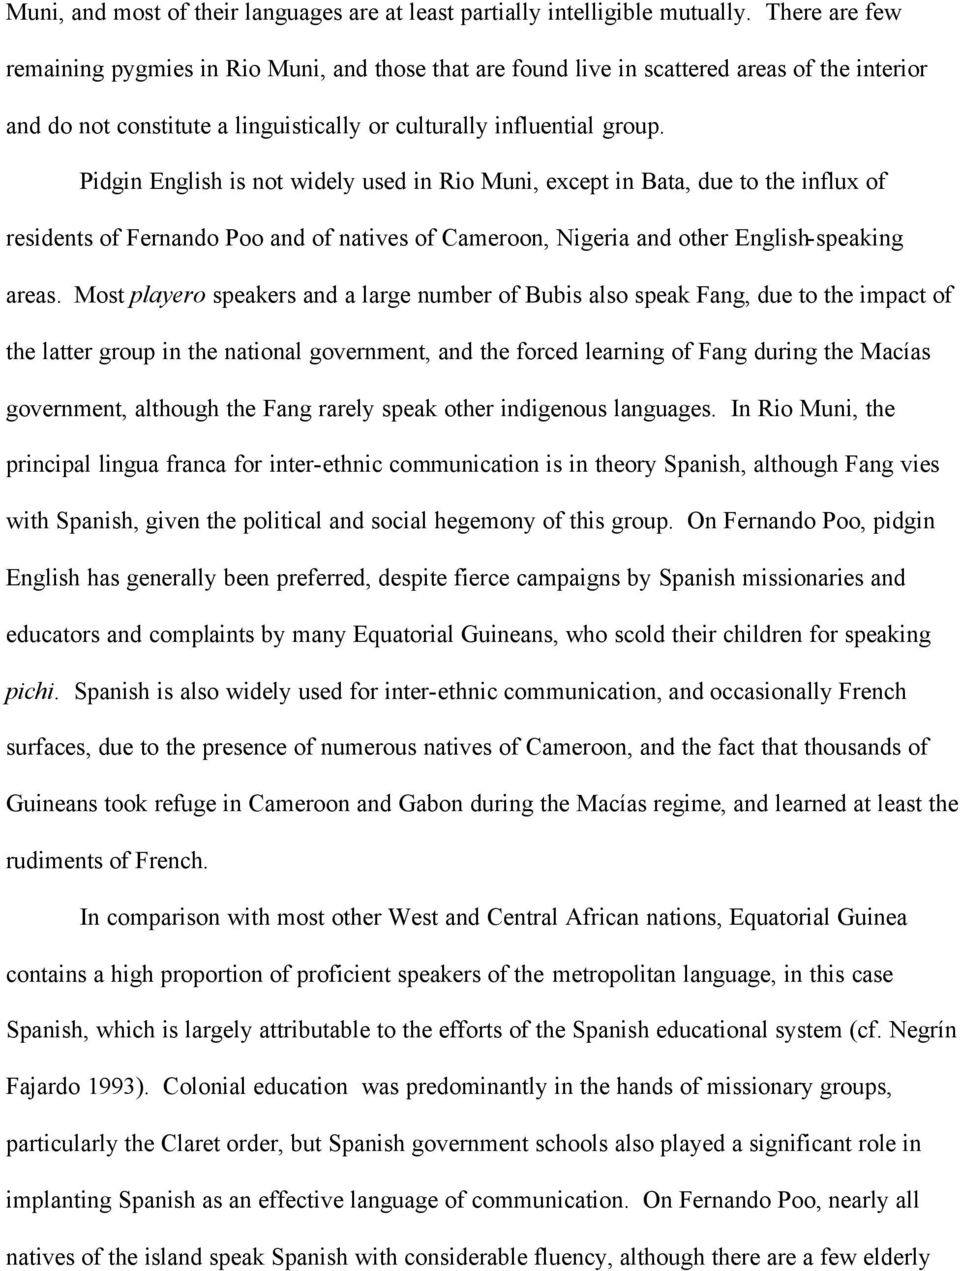 Pidgin English is not widely used in Rio Muni, except in Bata, due to the influx of residents of Fernando Poo and of natives of Cameroon, Nigeria and other English-speaking areas.